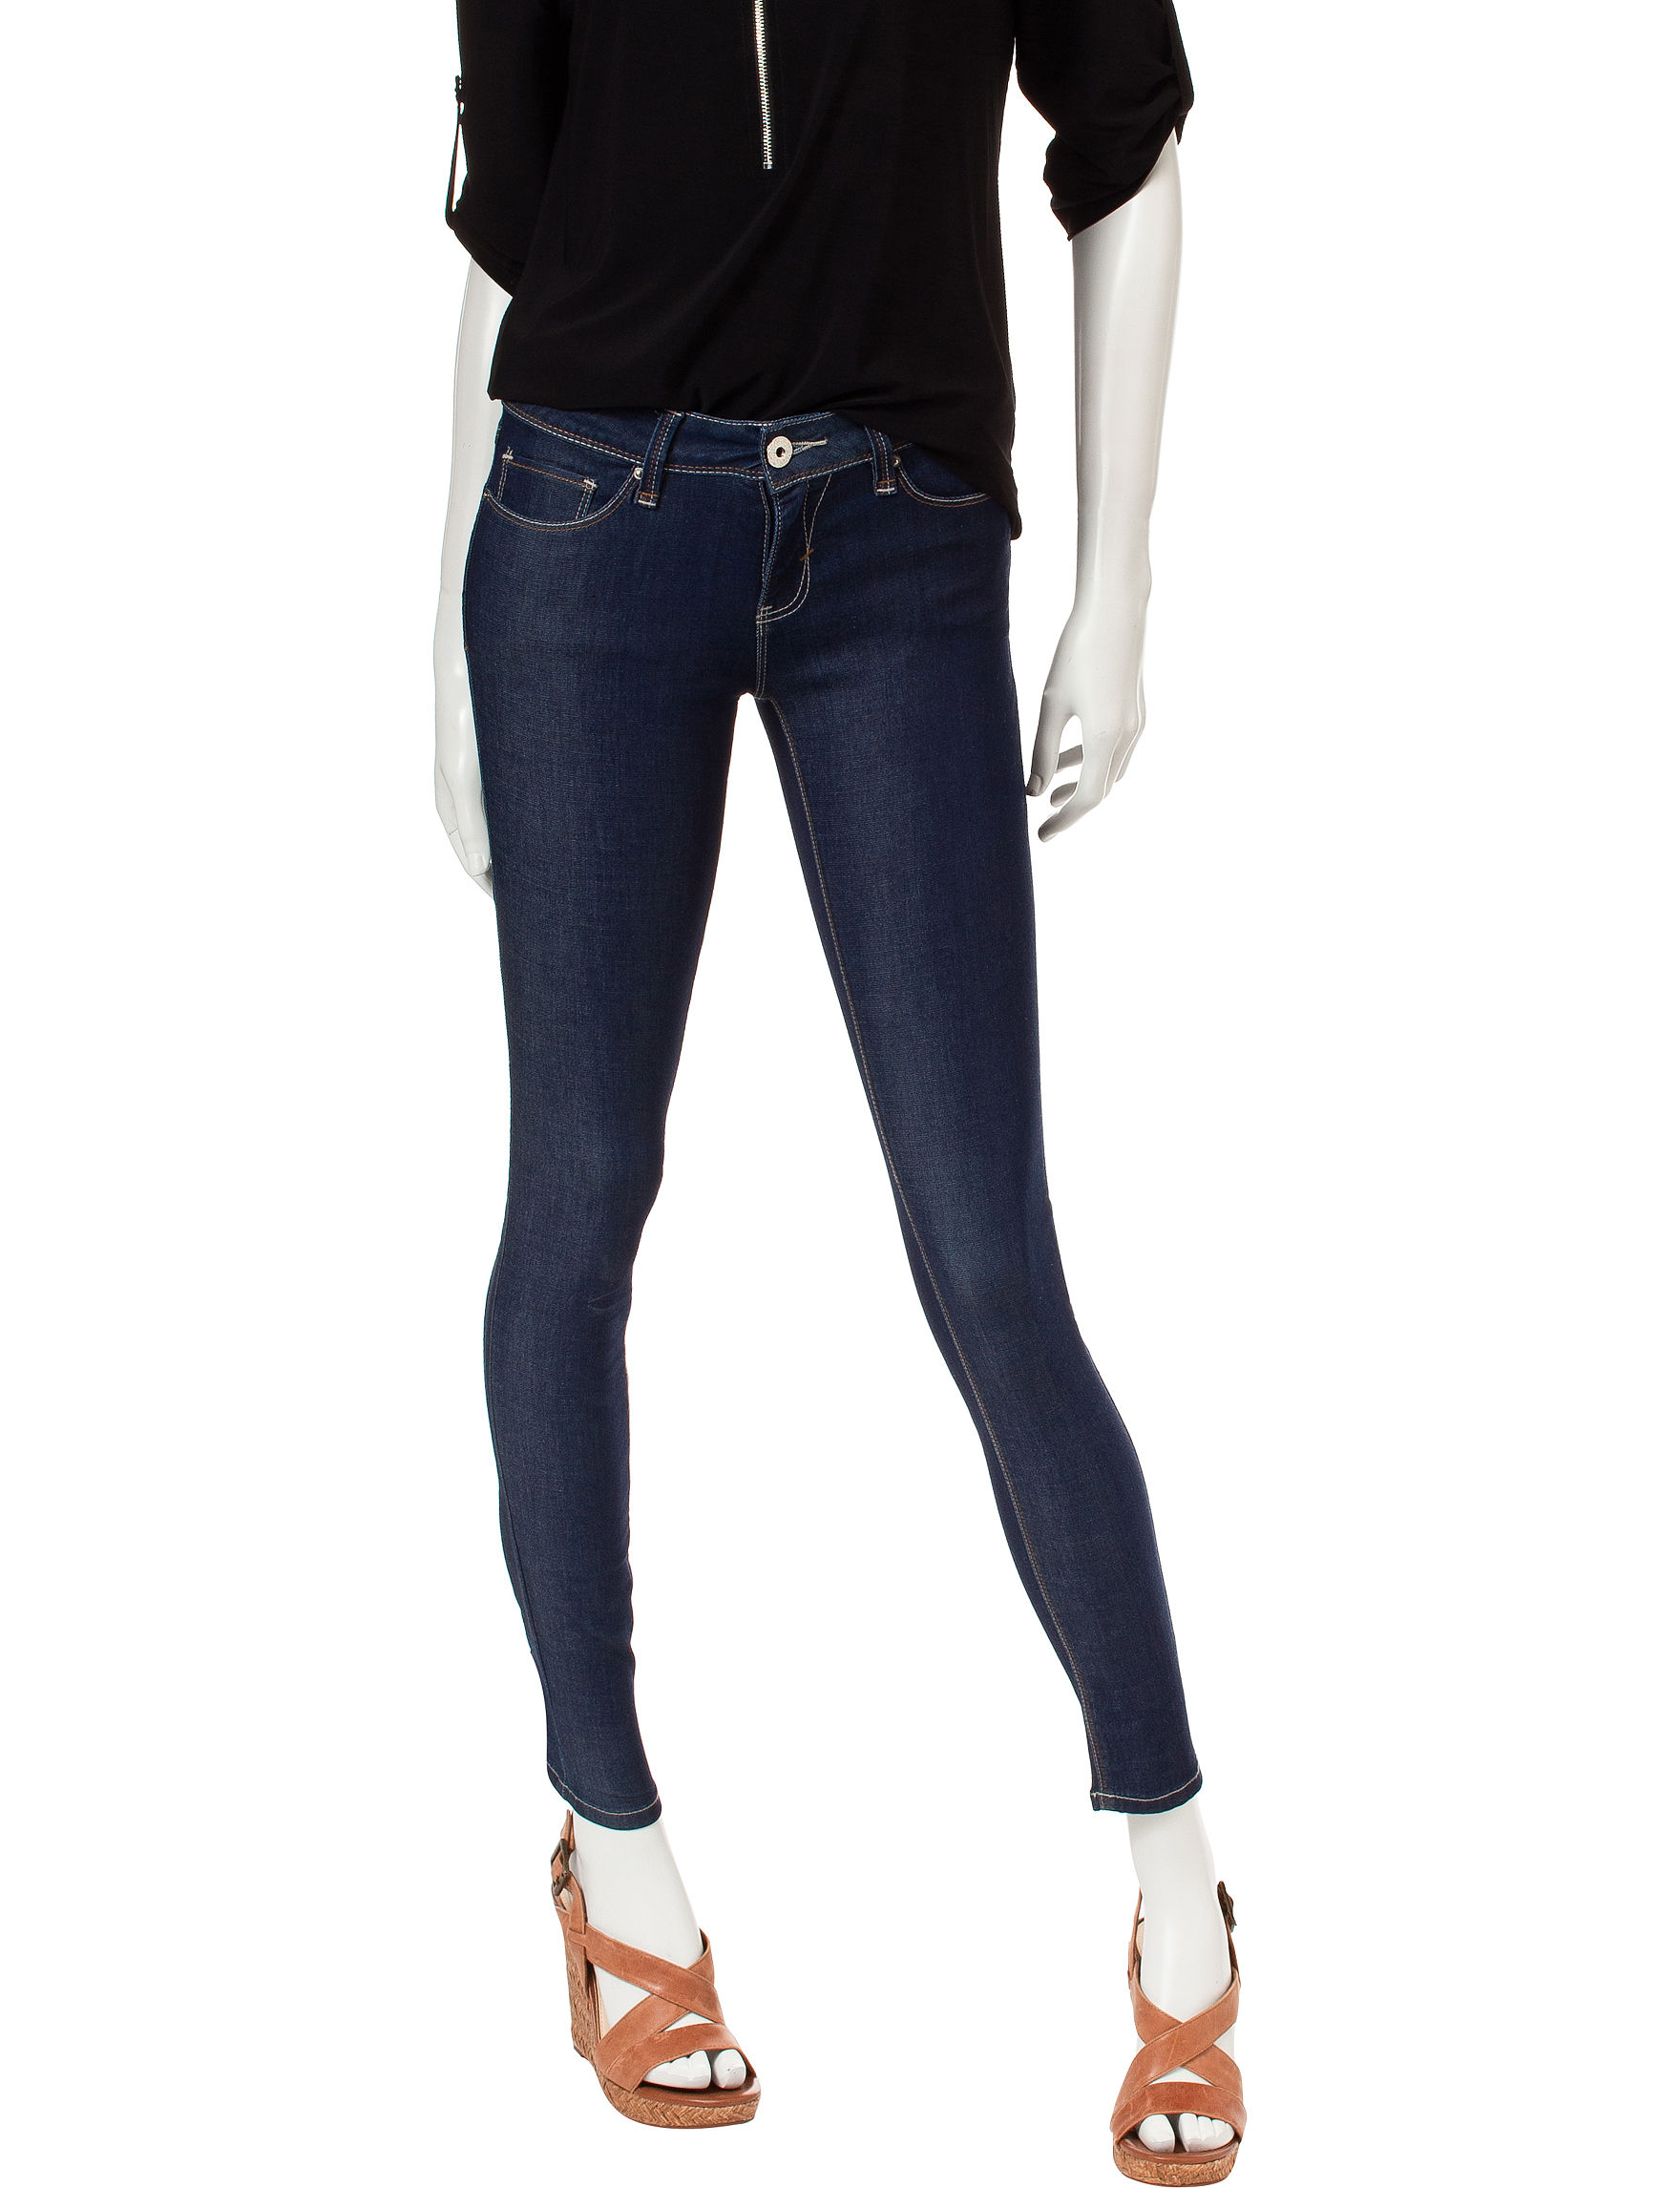 Wishful Park Dark Blue Skinny